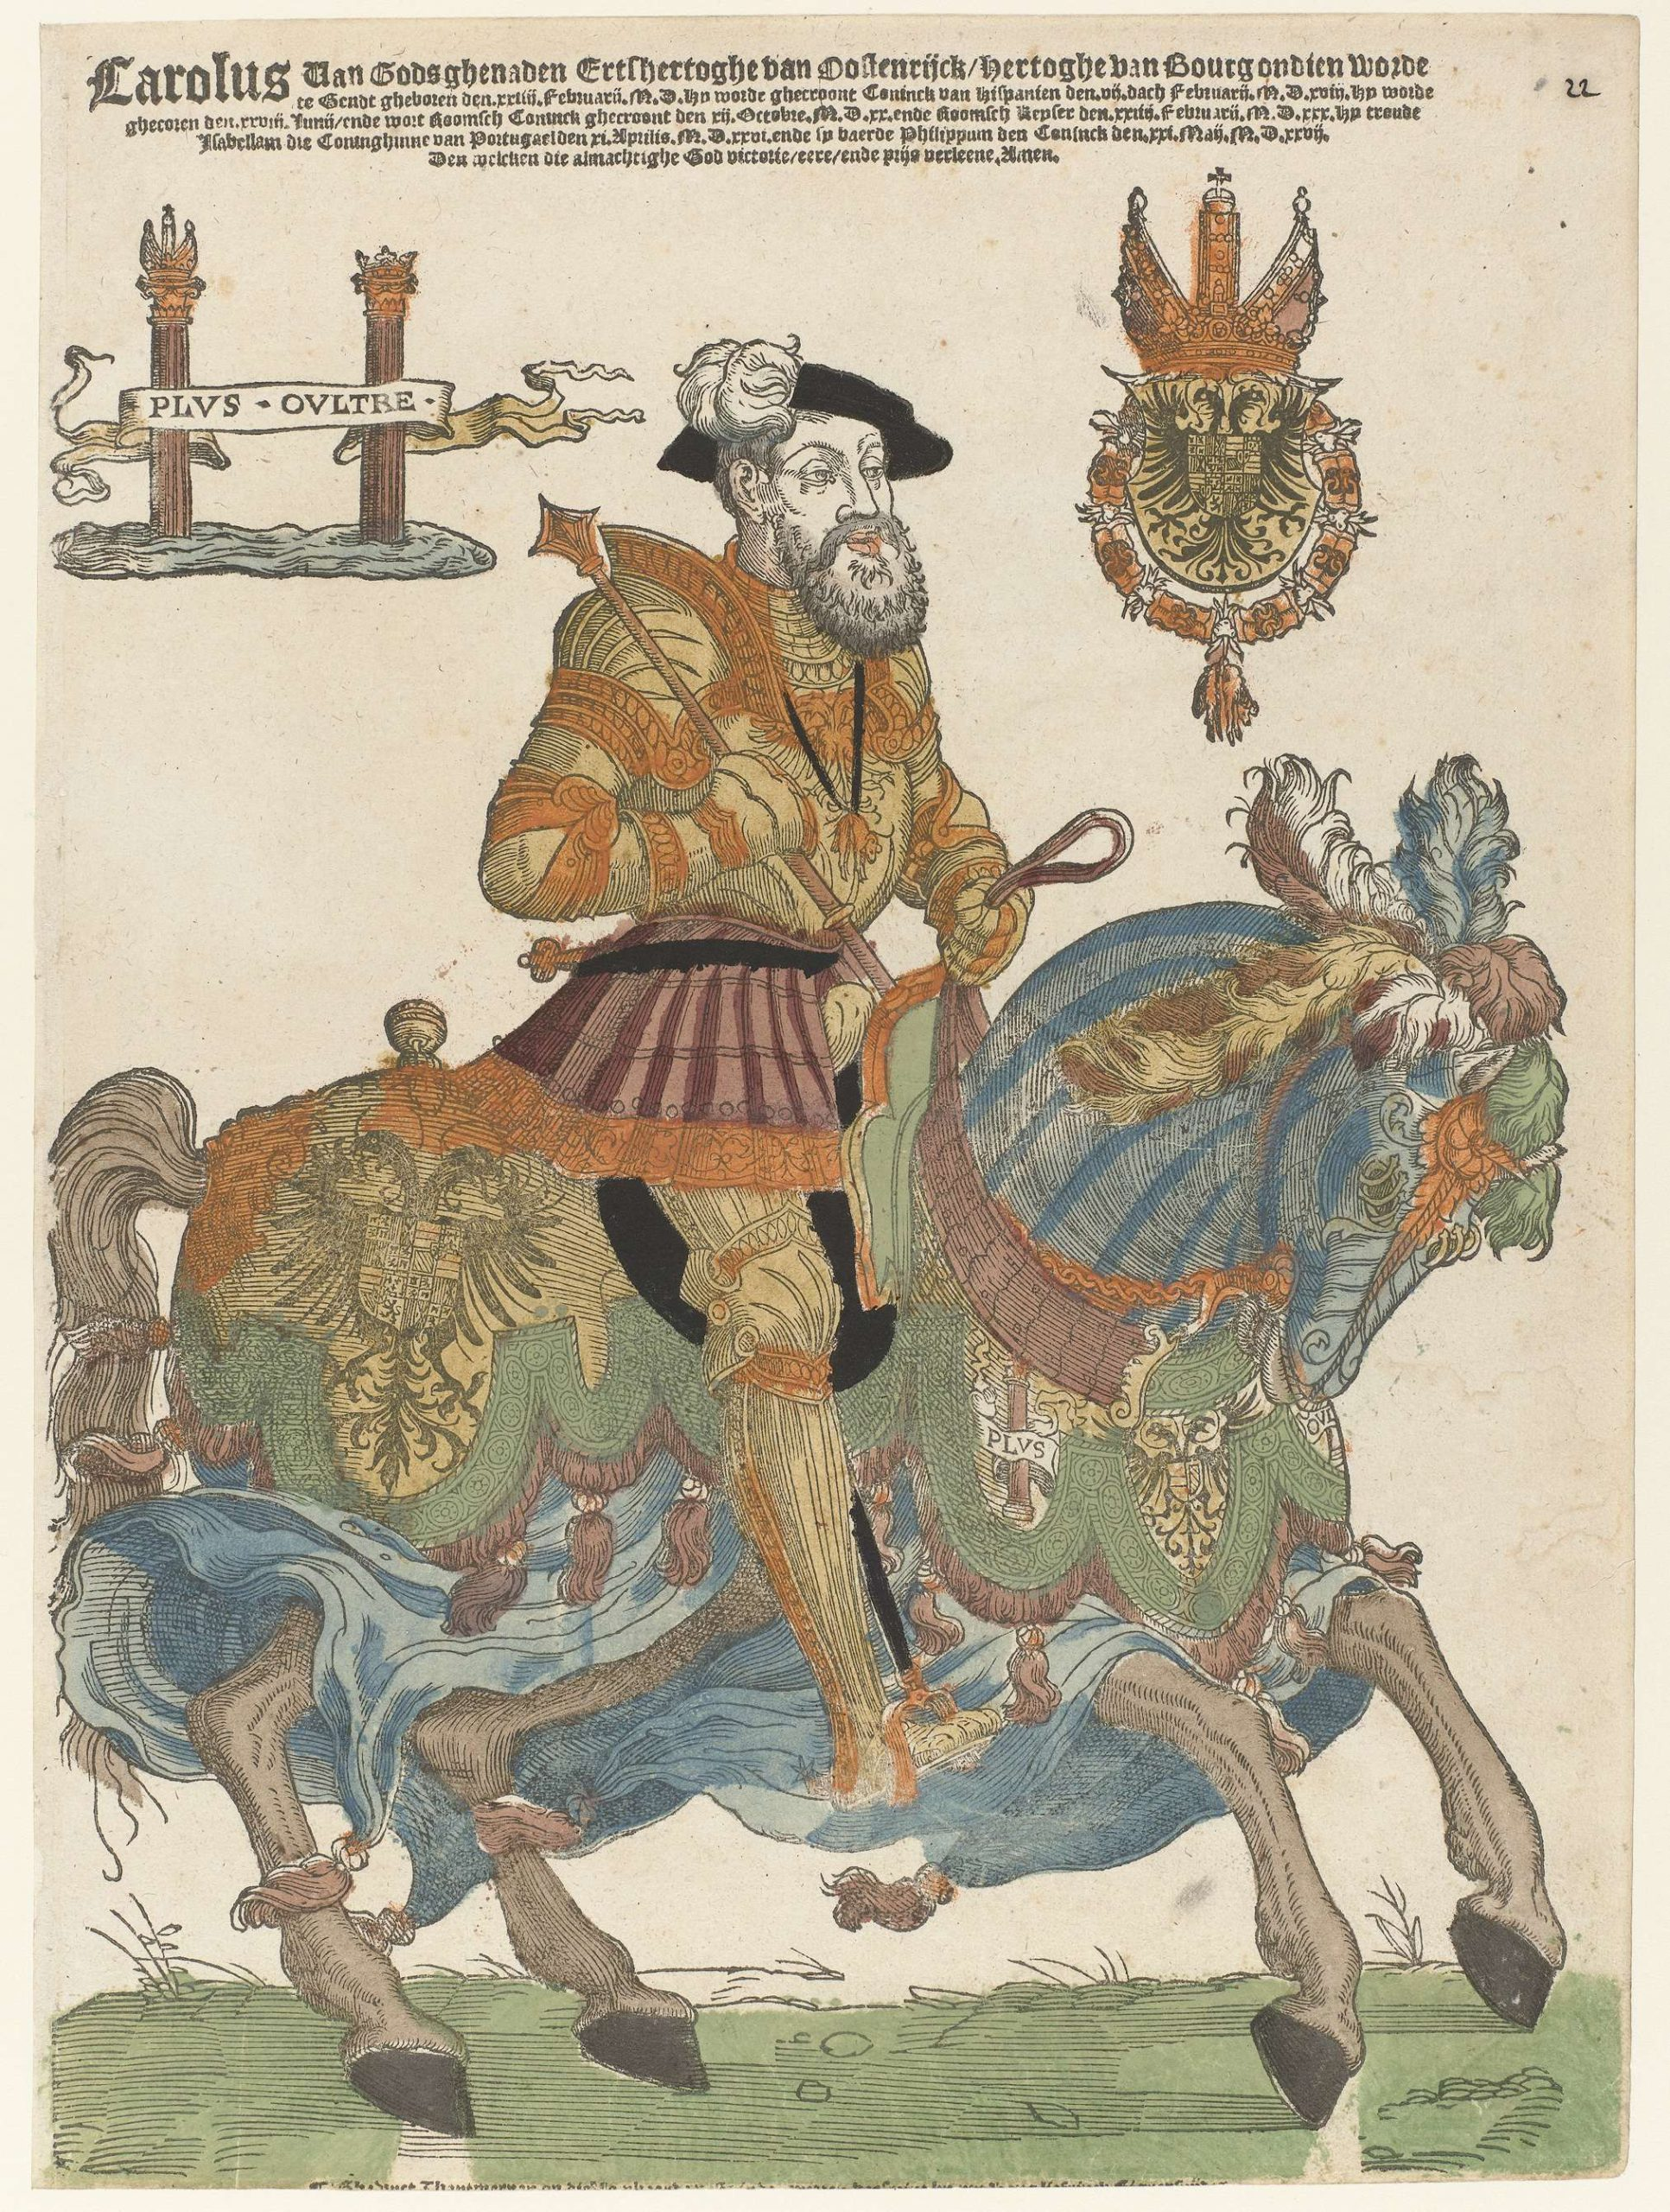 Emperor Charles V on Horseback, 1538-45, Cornelis Anthonisz (manner of) and Hans Liefrinck (I), Antwerp, Netherlands